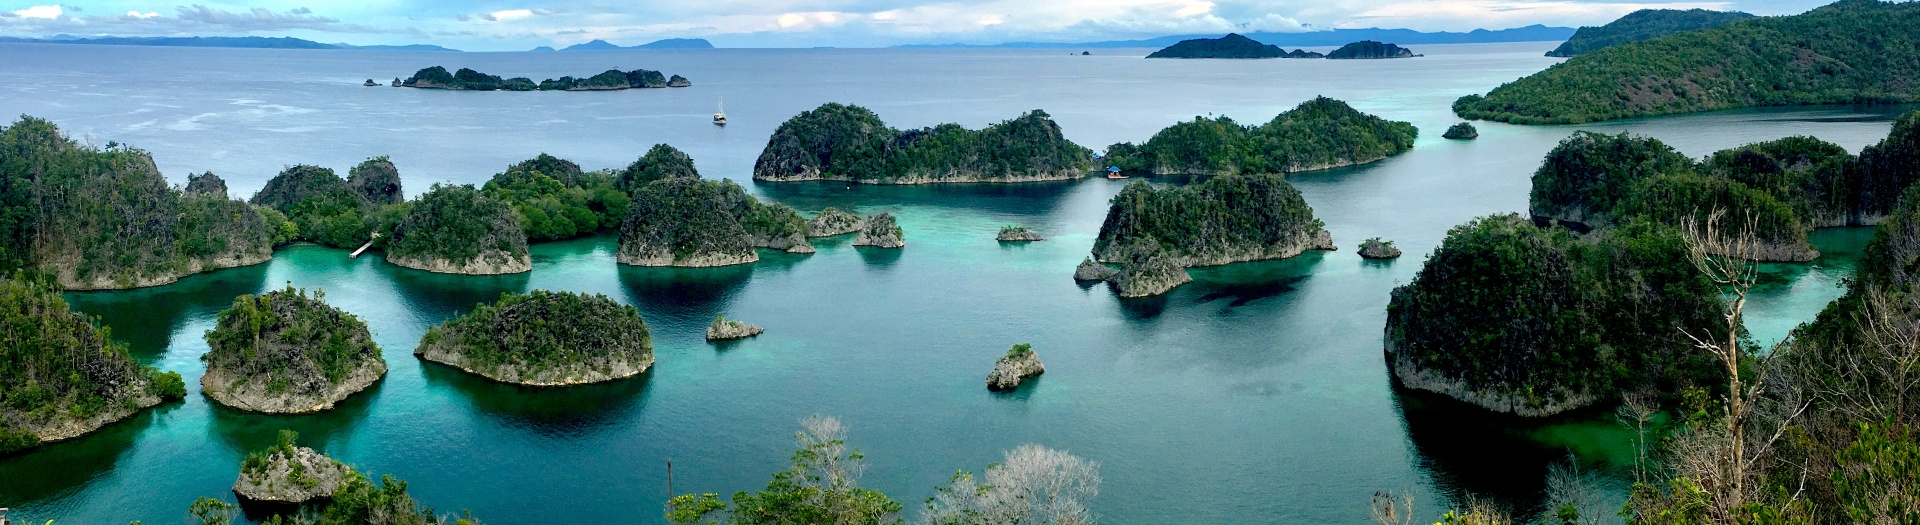 Adventure cruise in Rajat Ampat 12 nights (Sorong - Sorong) | DUNE Indonesia